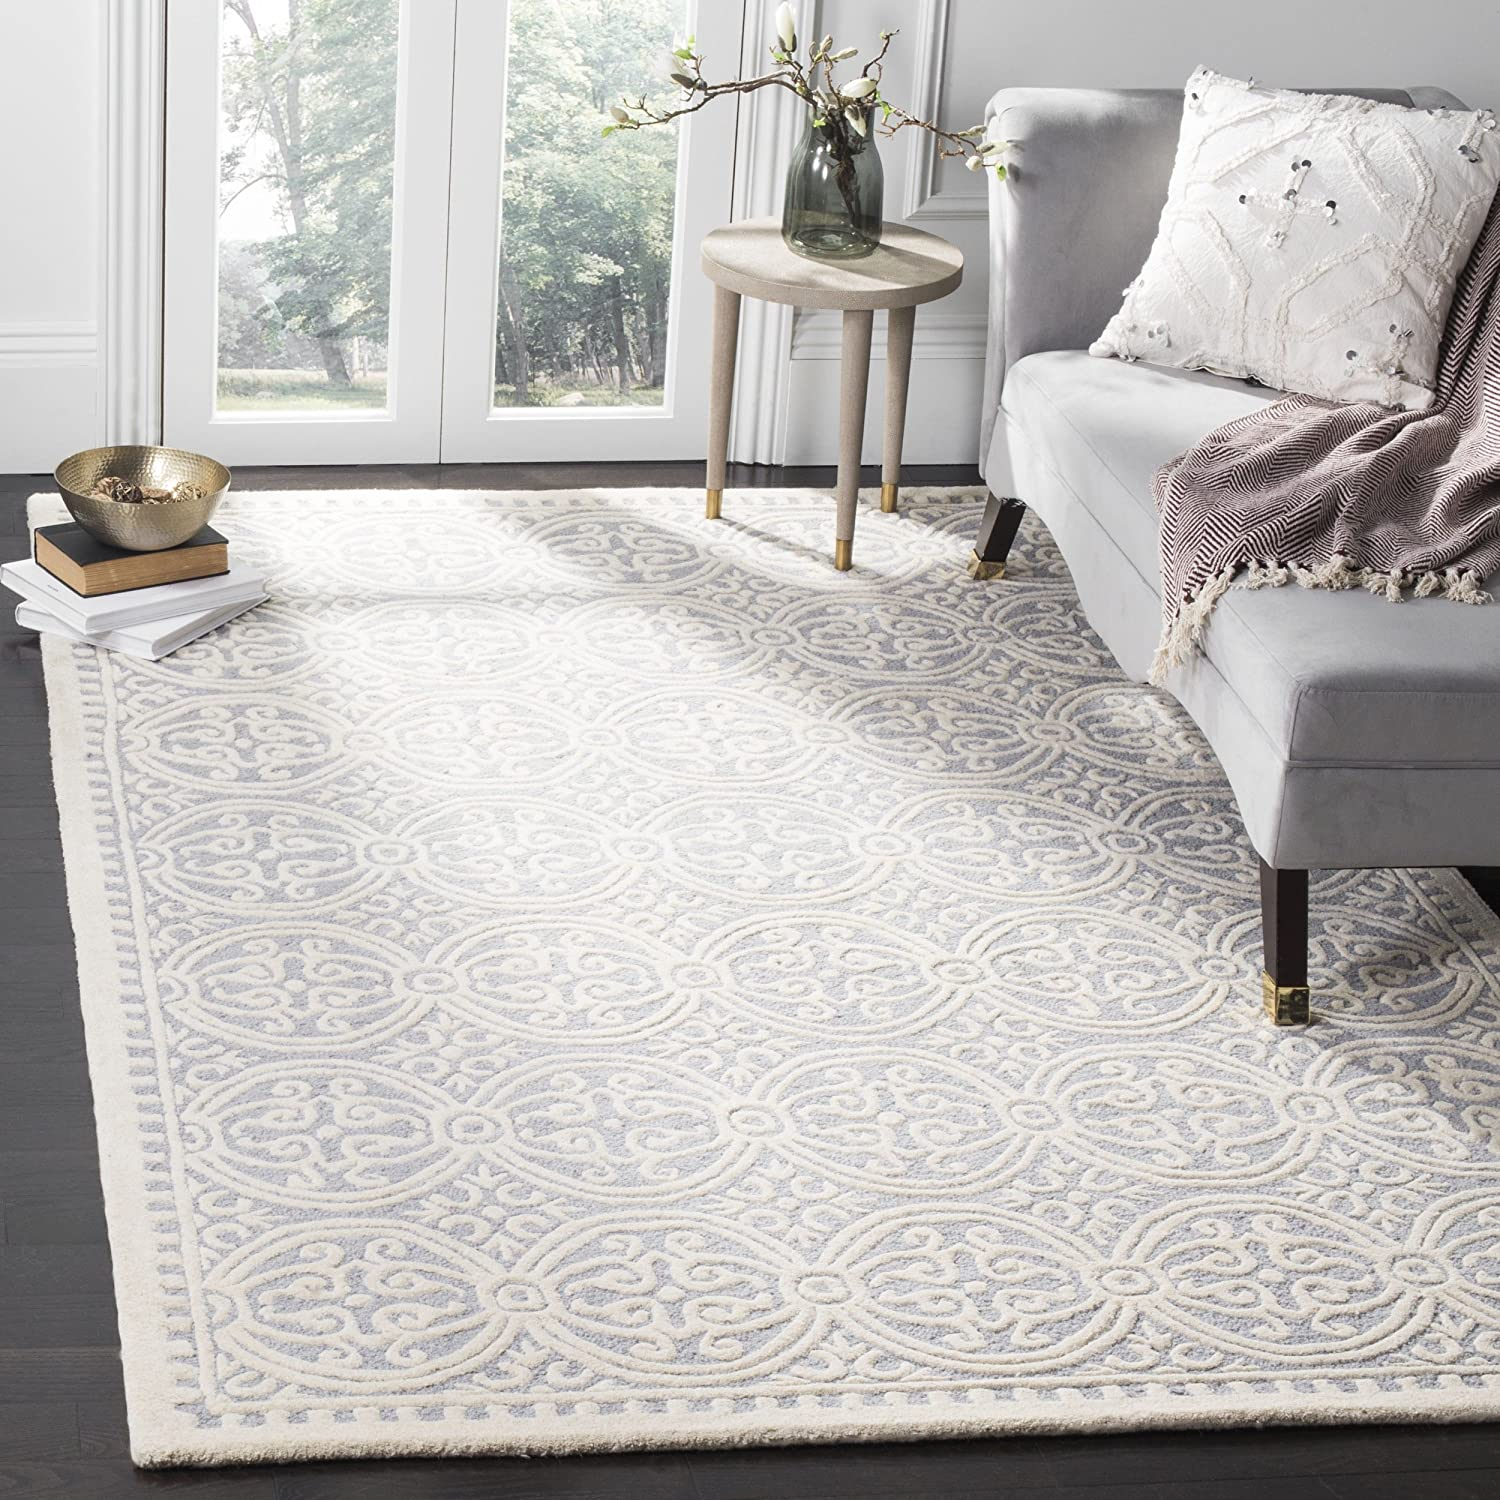 Safavieh Cambridge Collection Cam123 D Handcrafted Moroccan Geometric Silver And Ivory Premium Wool Area Rug (8' X 10') by Safavieh